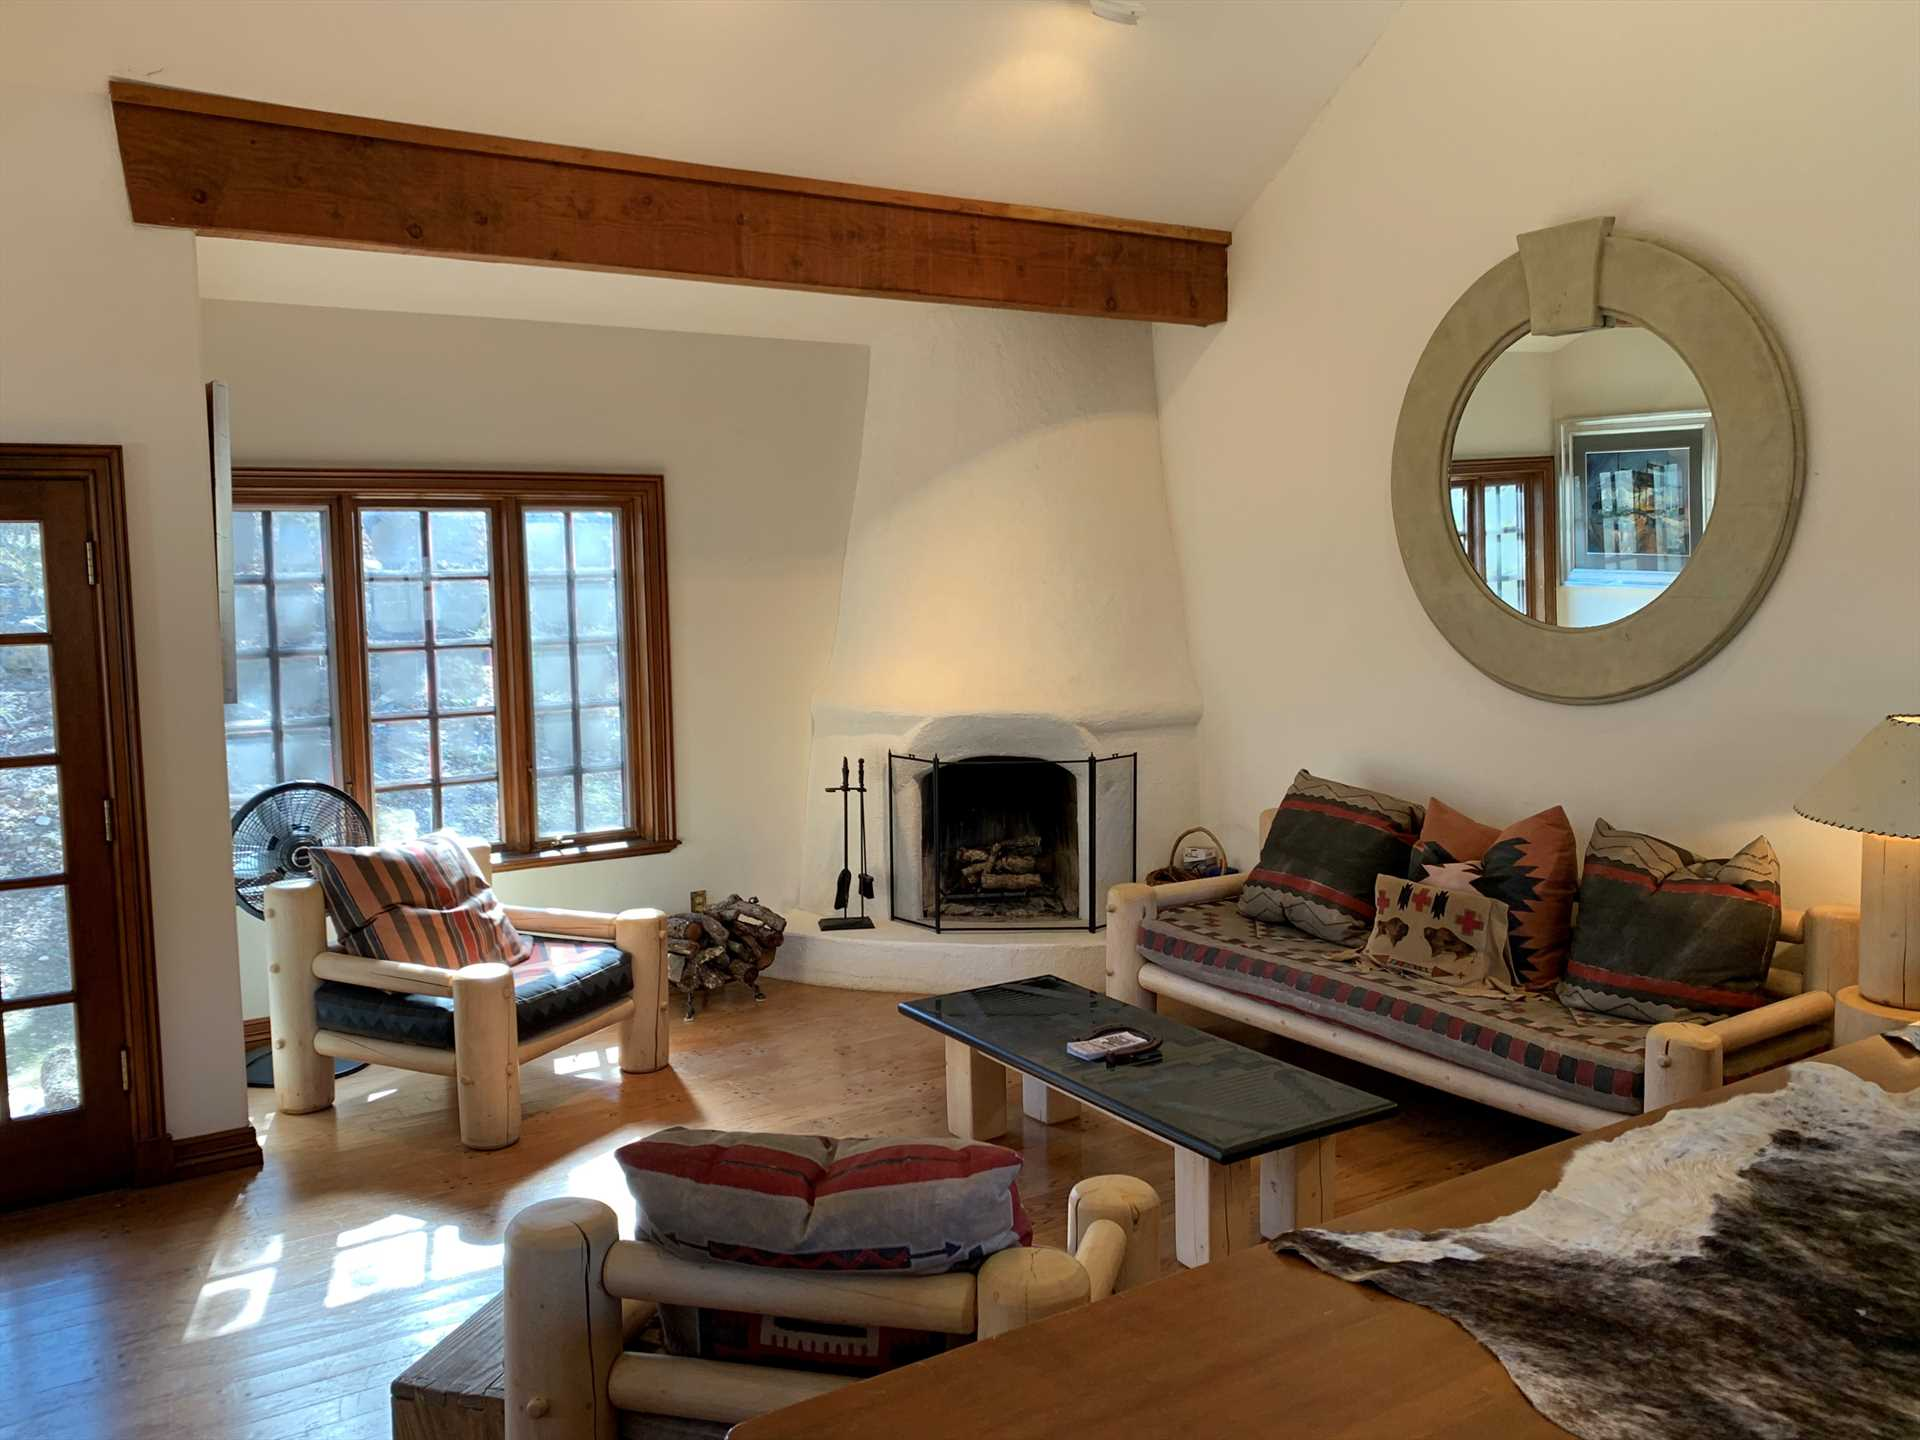 High ceilings, plenty of comfy furniture, and a warming fireplace make the living area a welcoming and roomy place for the family to gather.